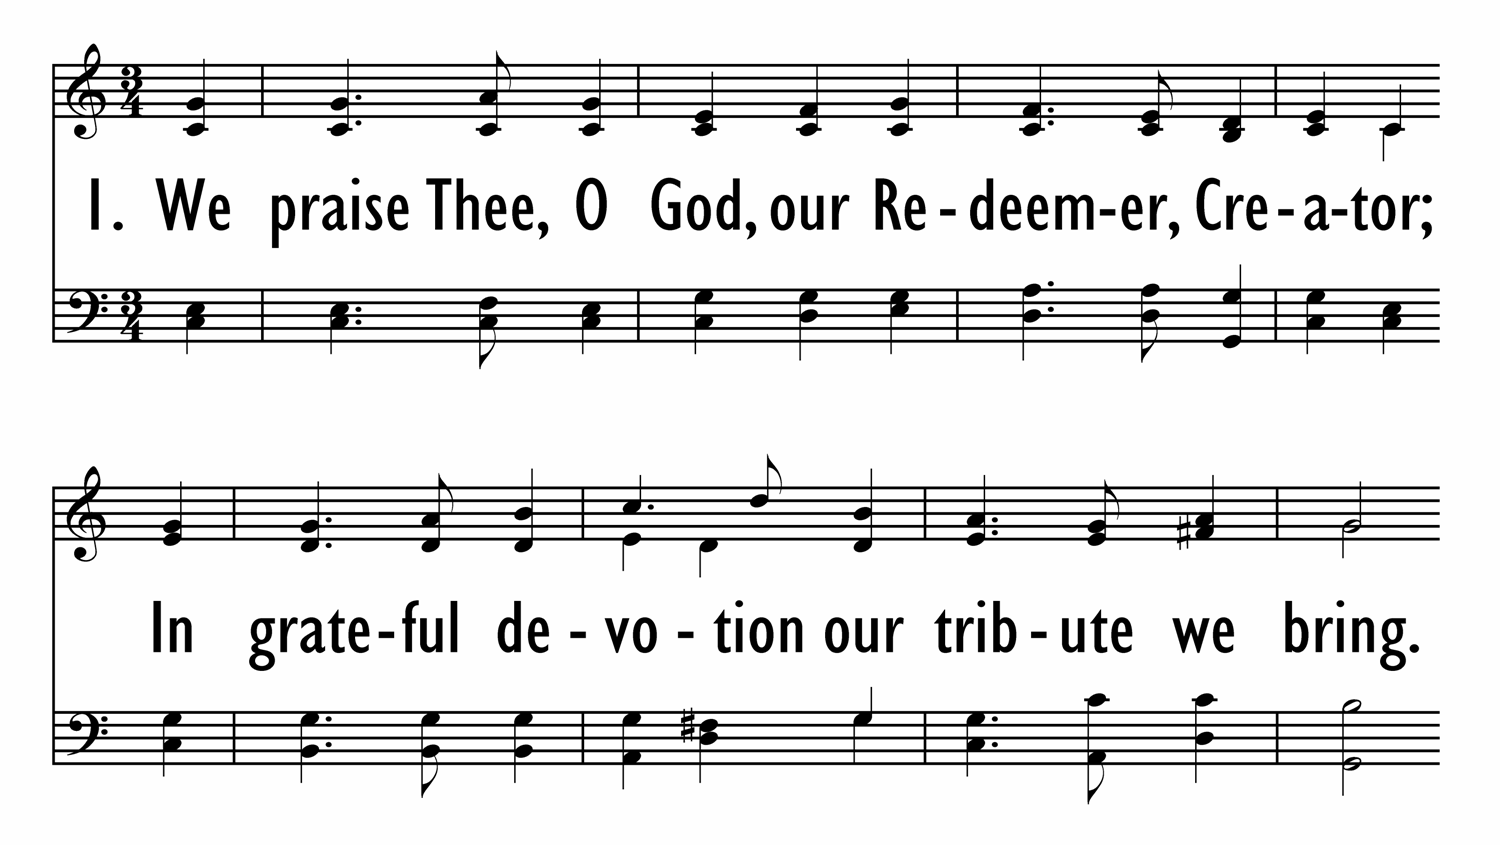 WE PRAISE THEE, O GOD, OUR REDEEMER w/ choral ending-ppt